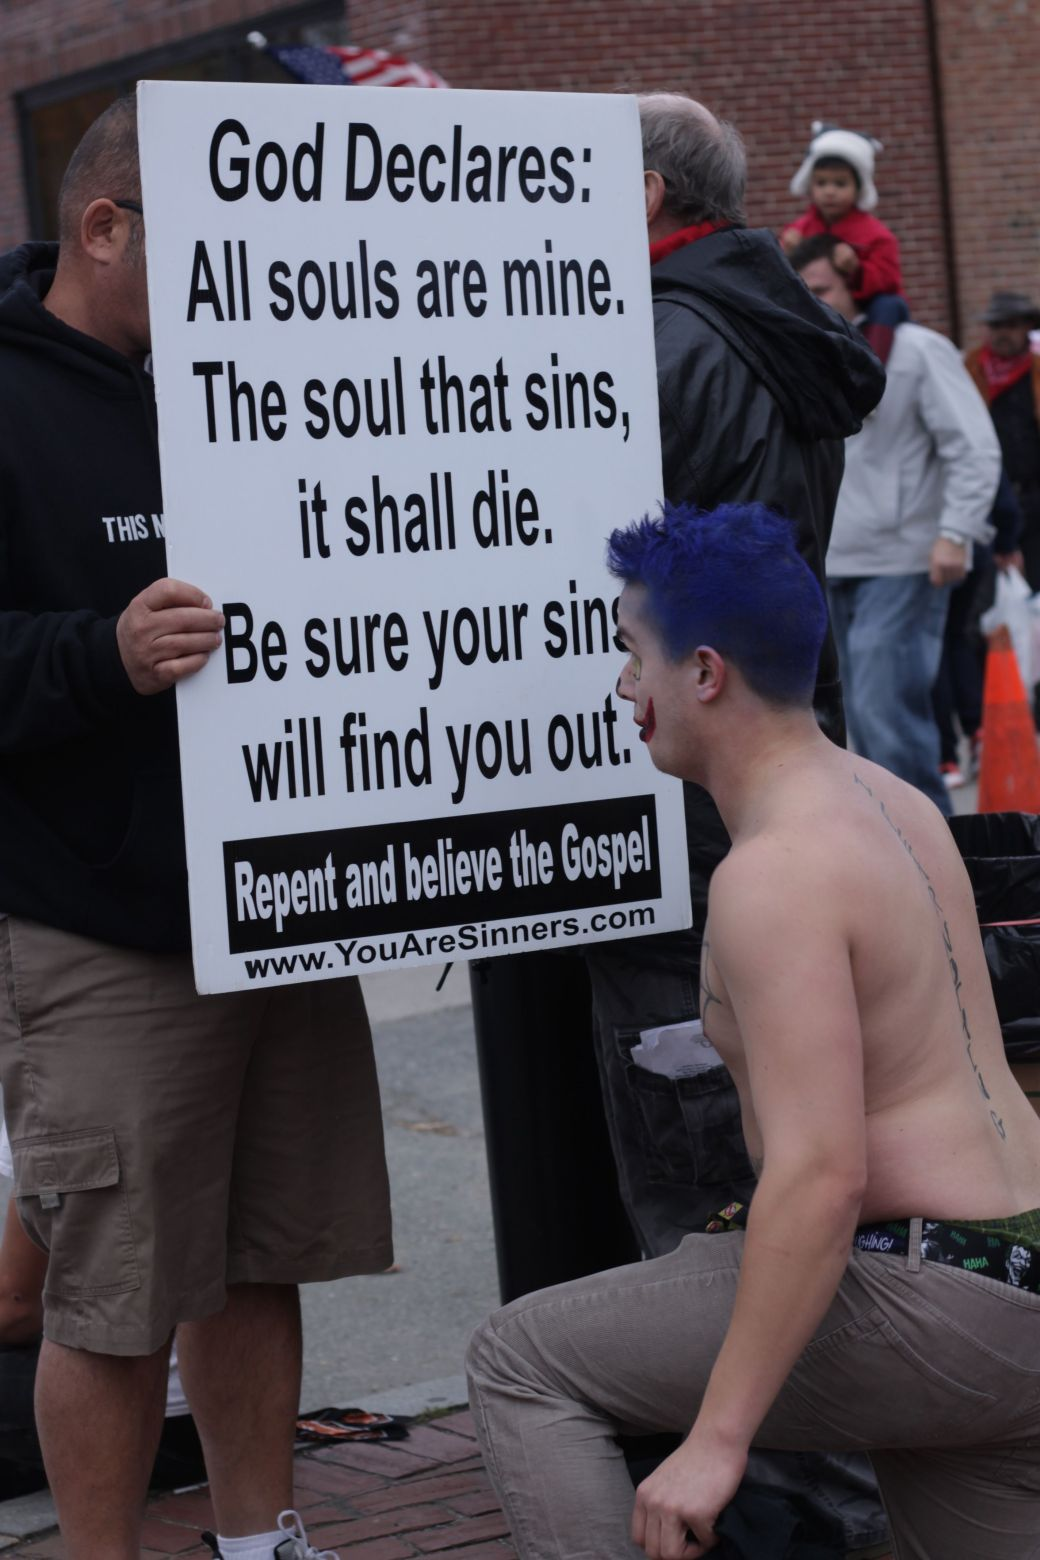 salem halloween october 31 2014 protesters hecklers